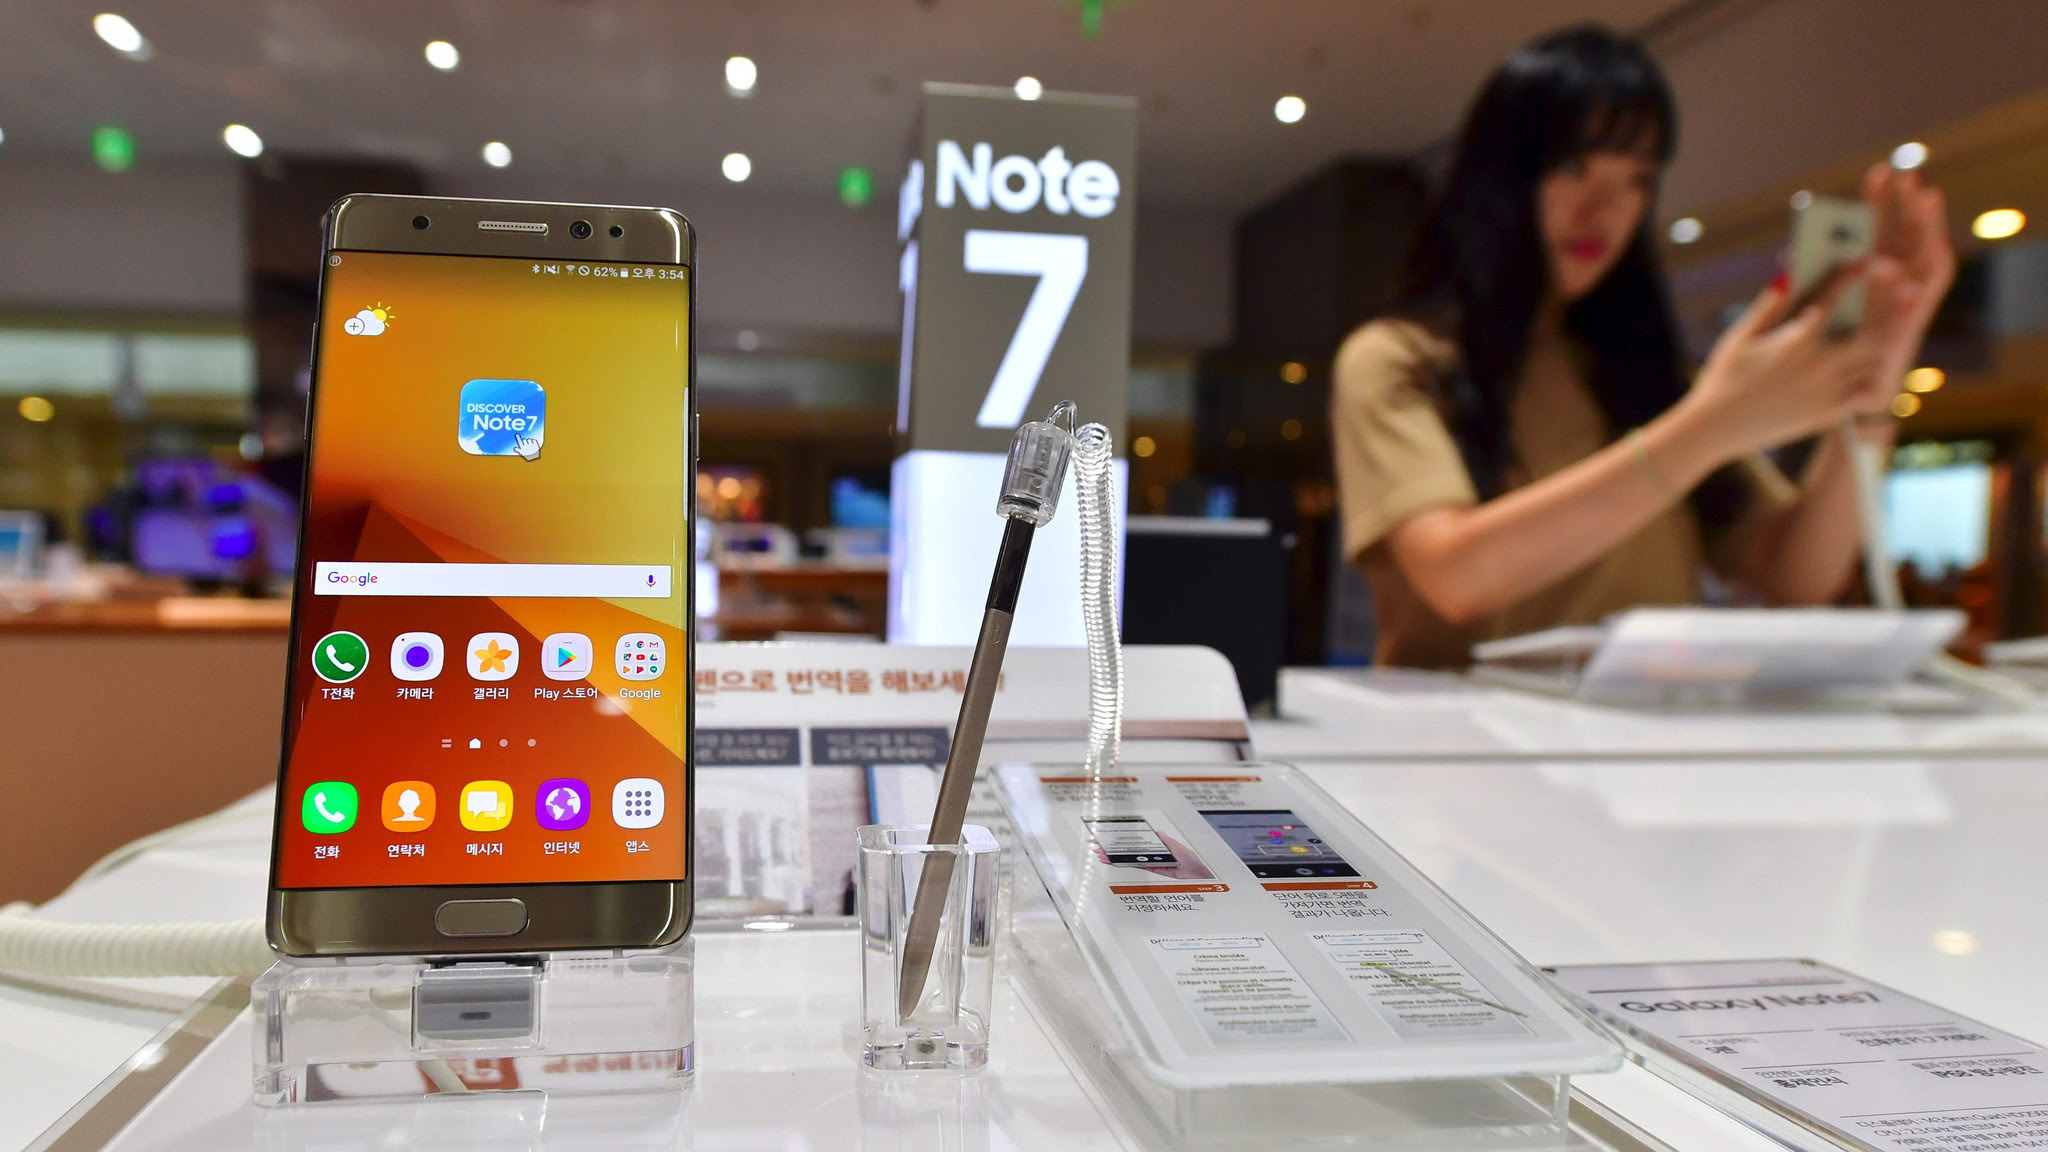 FAA warns airline passengers not to use new Samsung smartphone on plane